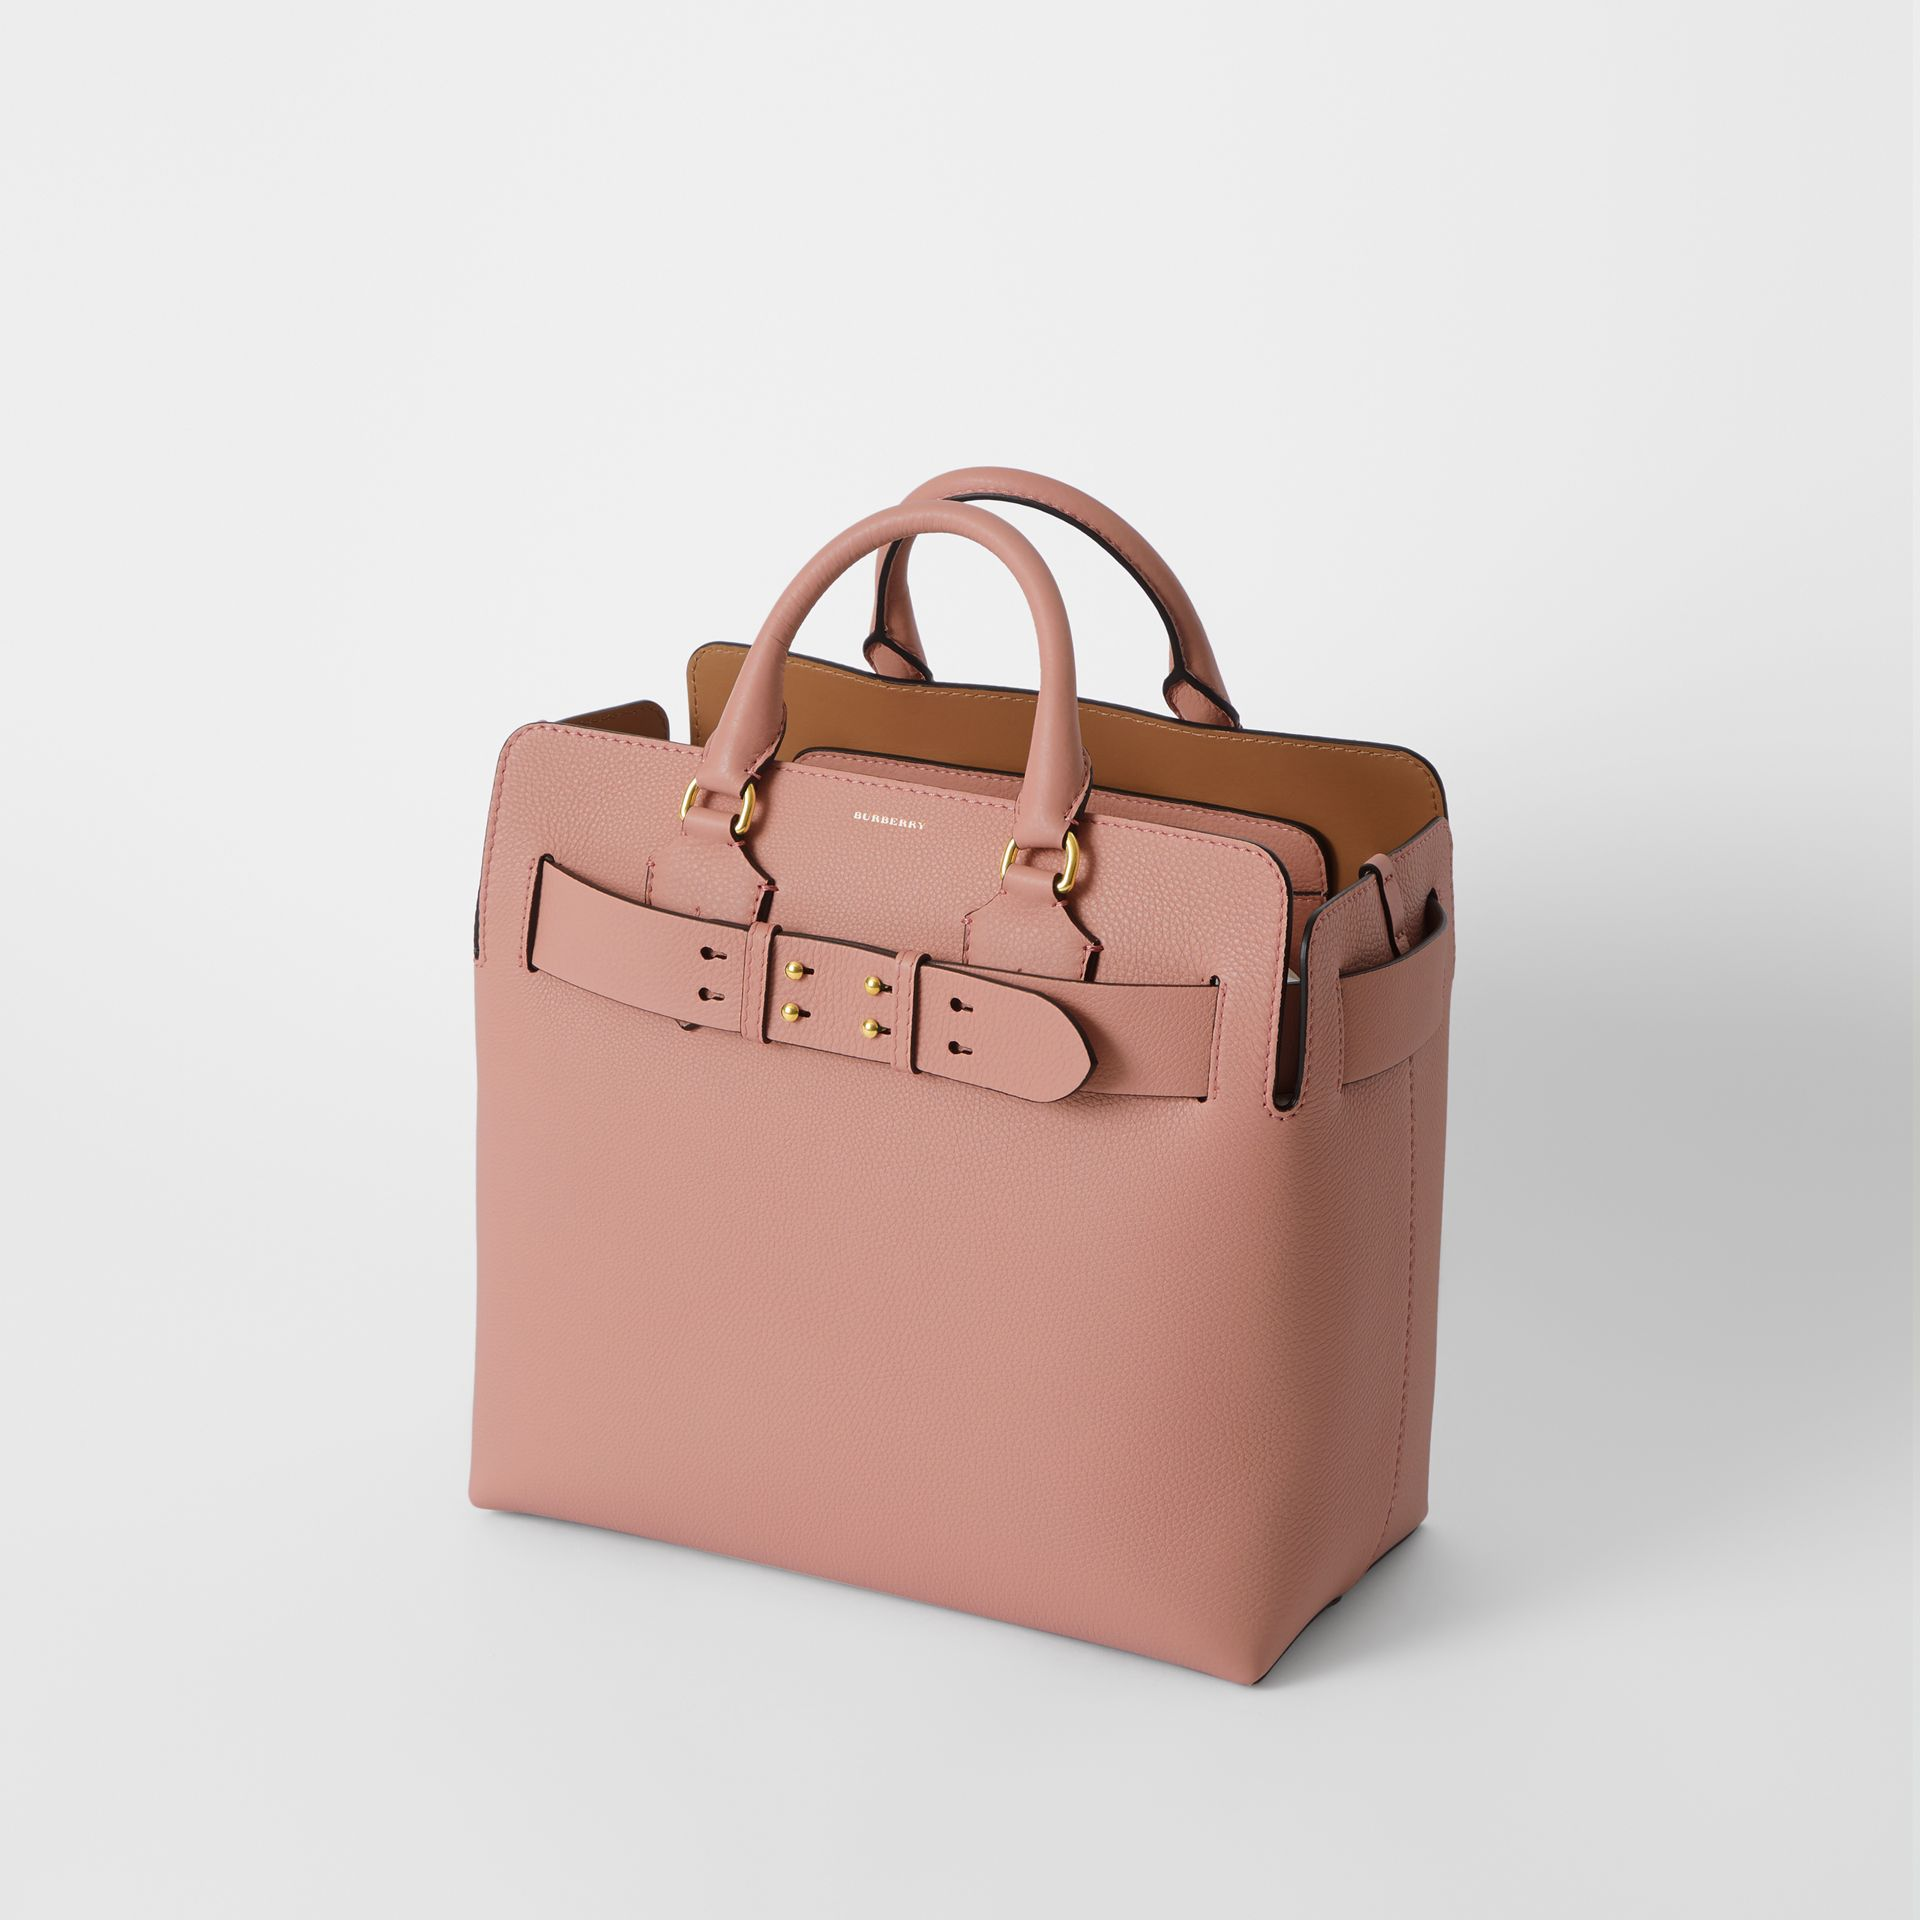 Sac The Belt moyen en cuir (Rose Platiné) - Femme | Burberry - photo de la galerie 4